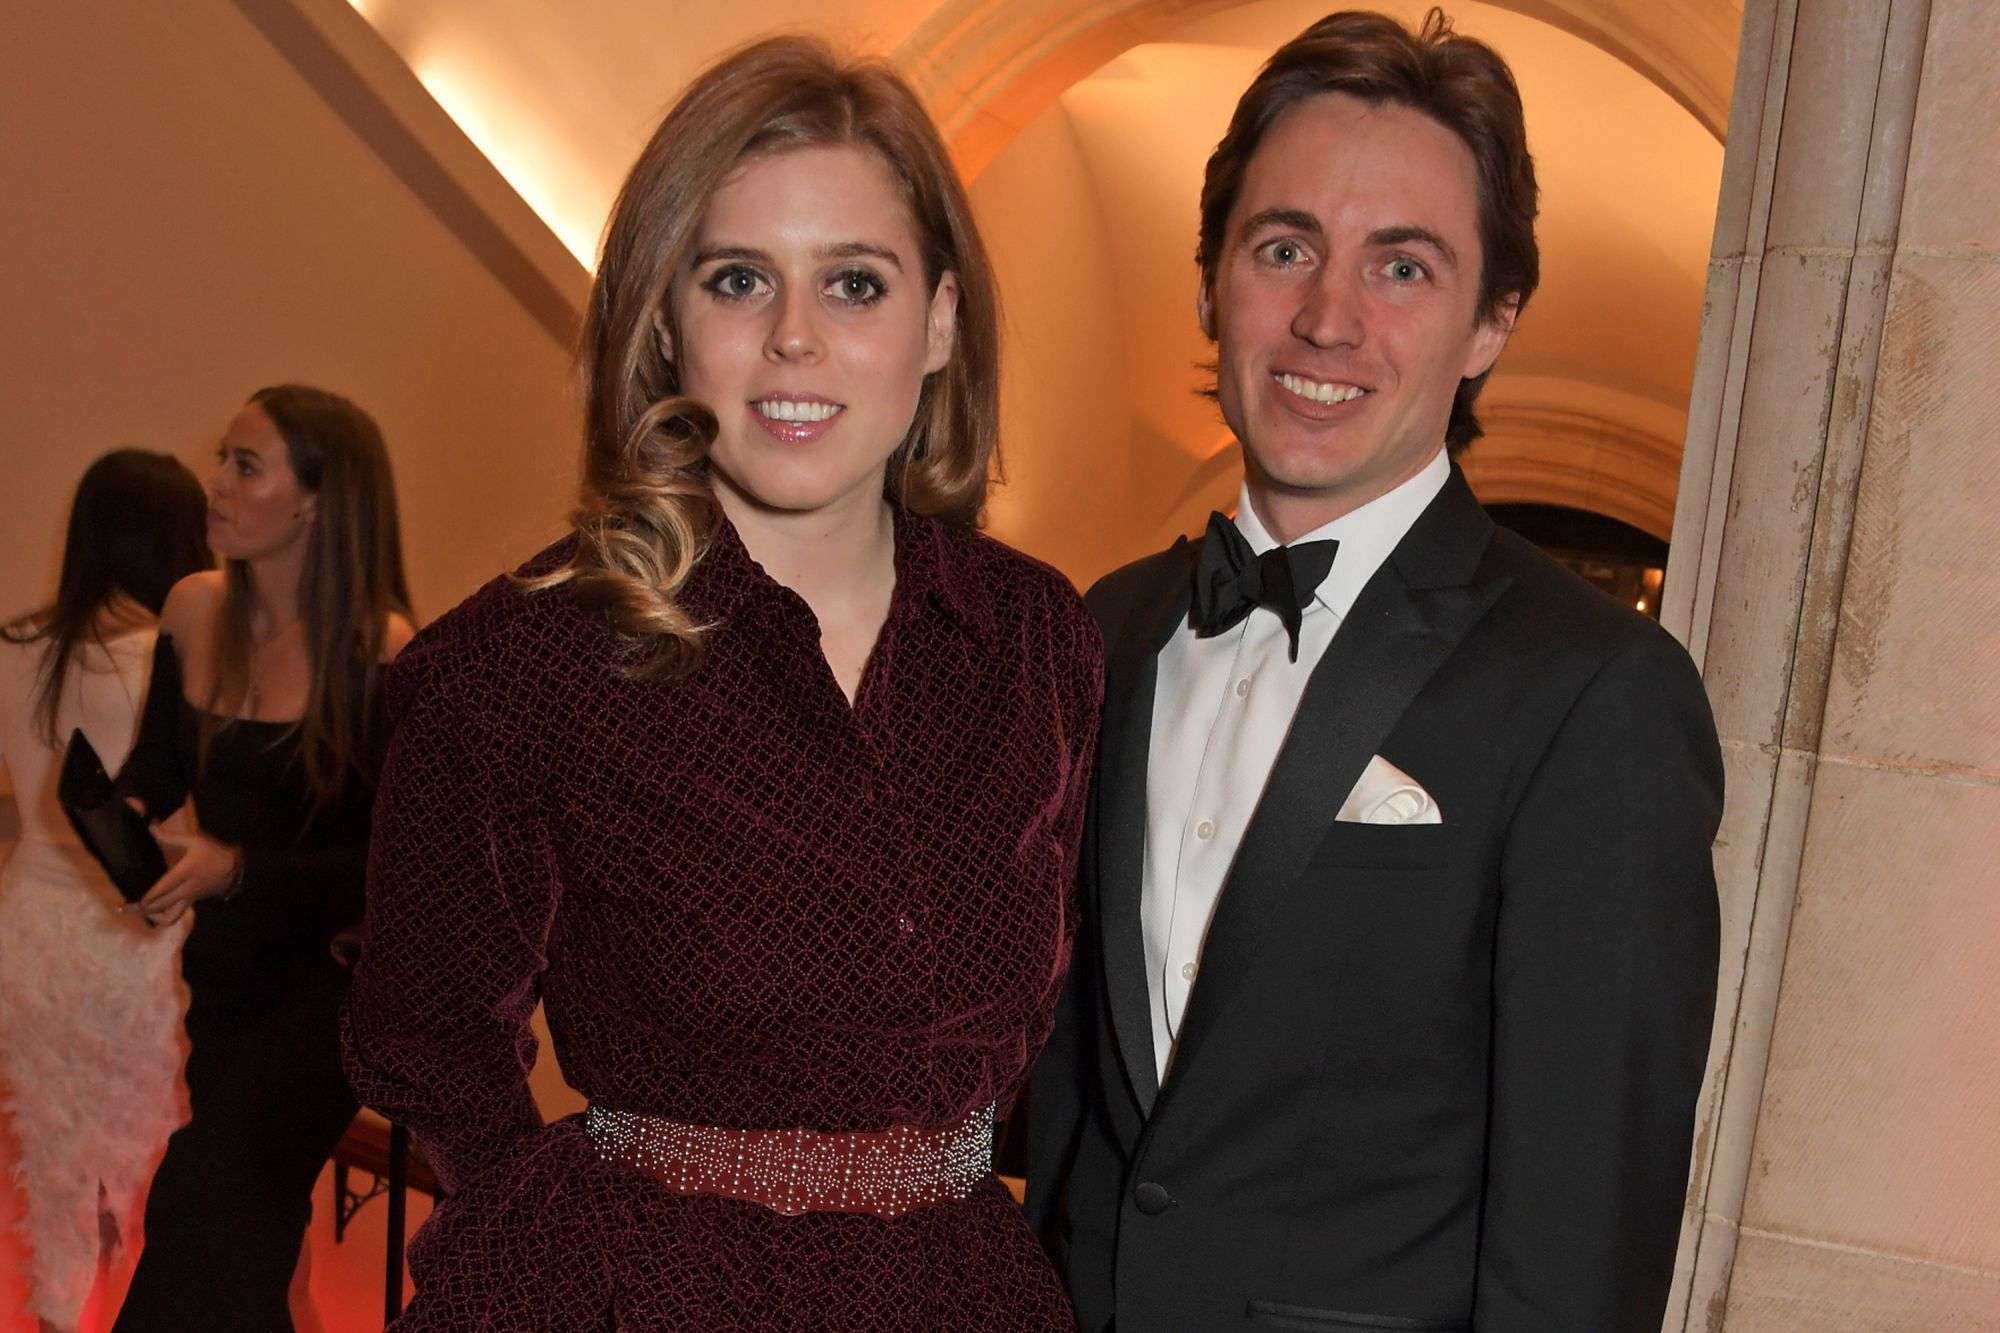 Everything We Know About Princess Beatrice and Edoardo Mapelli Mozzi's Royal Wedding